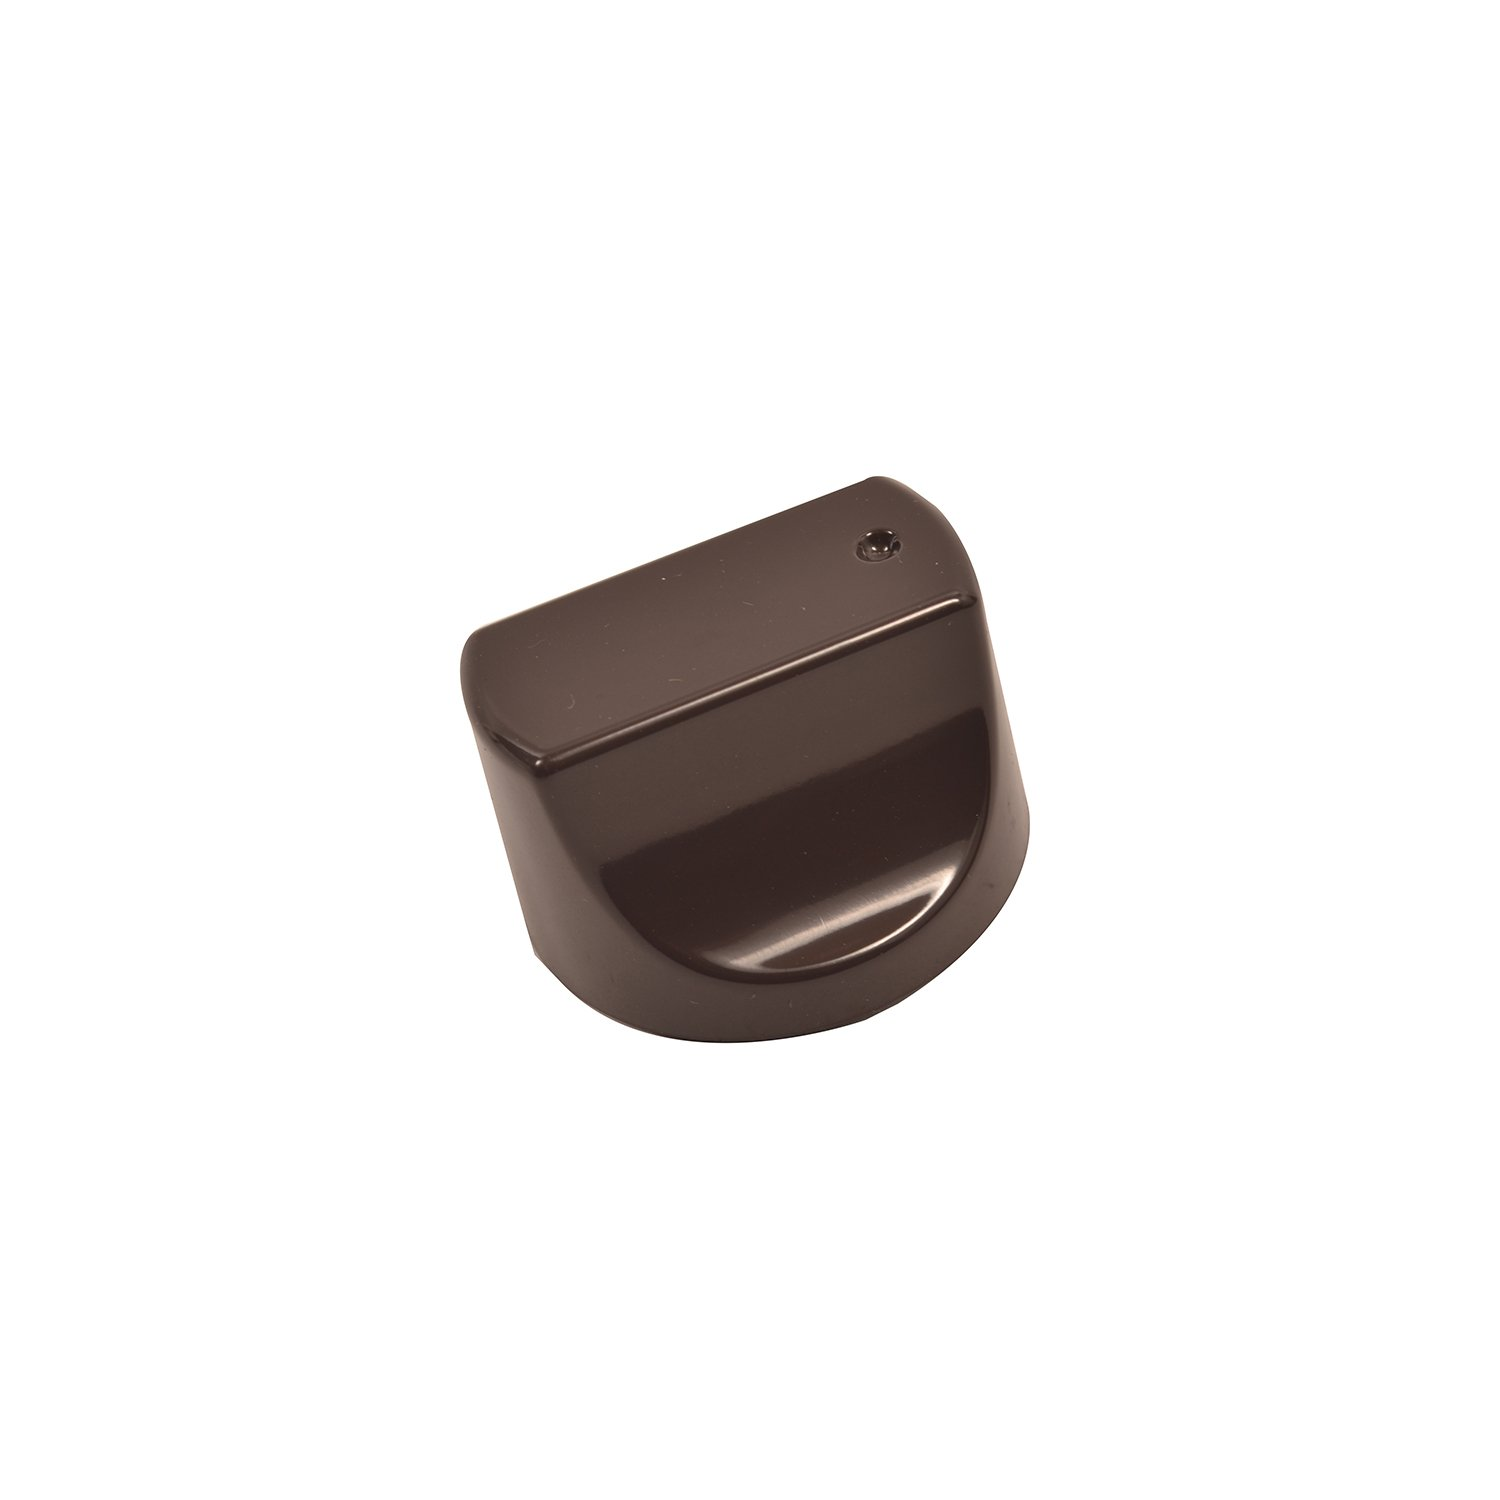 Genuine Hotpoint Cooker Control Knob - C00281522